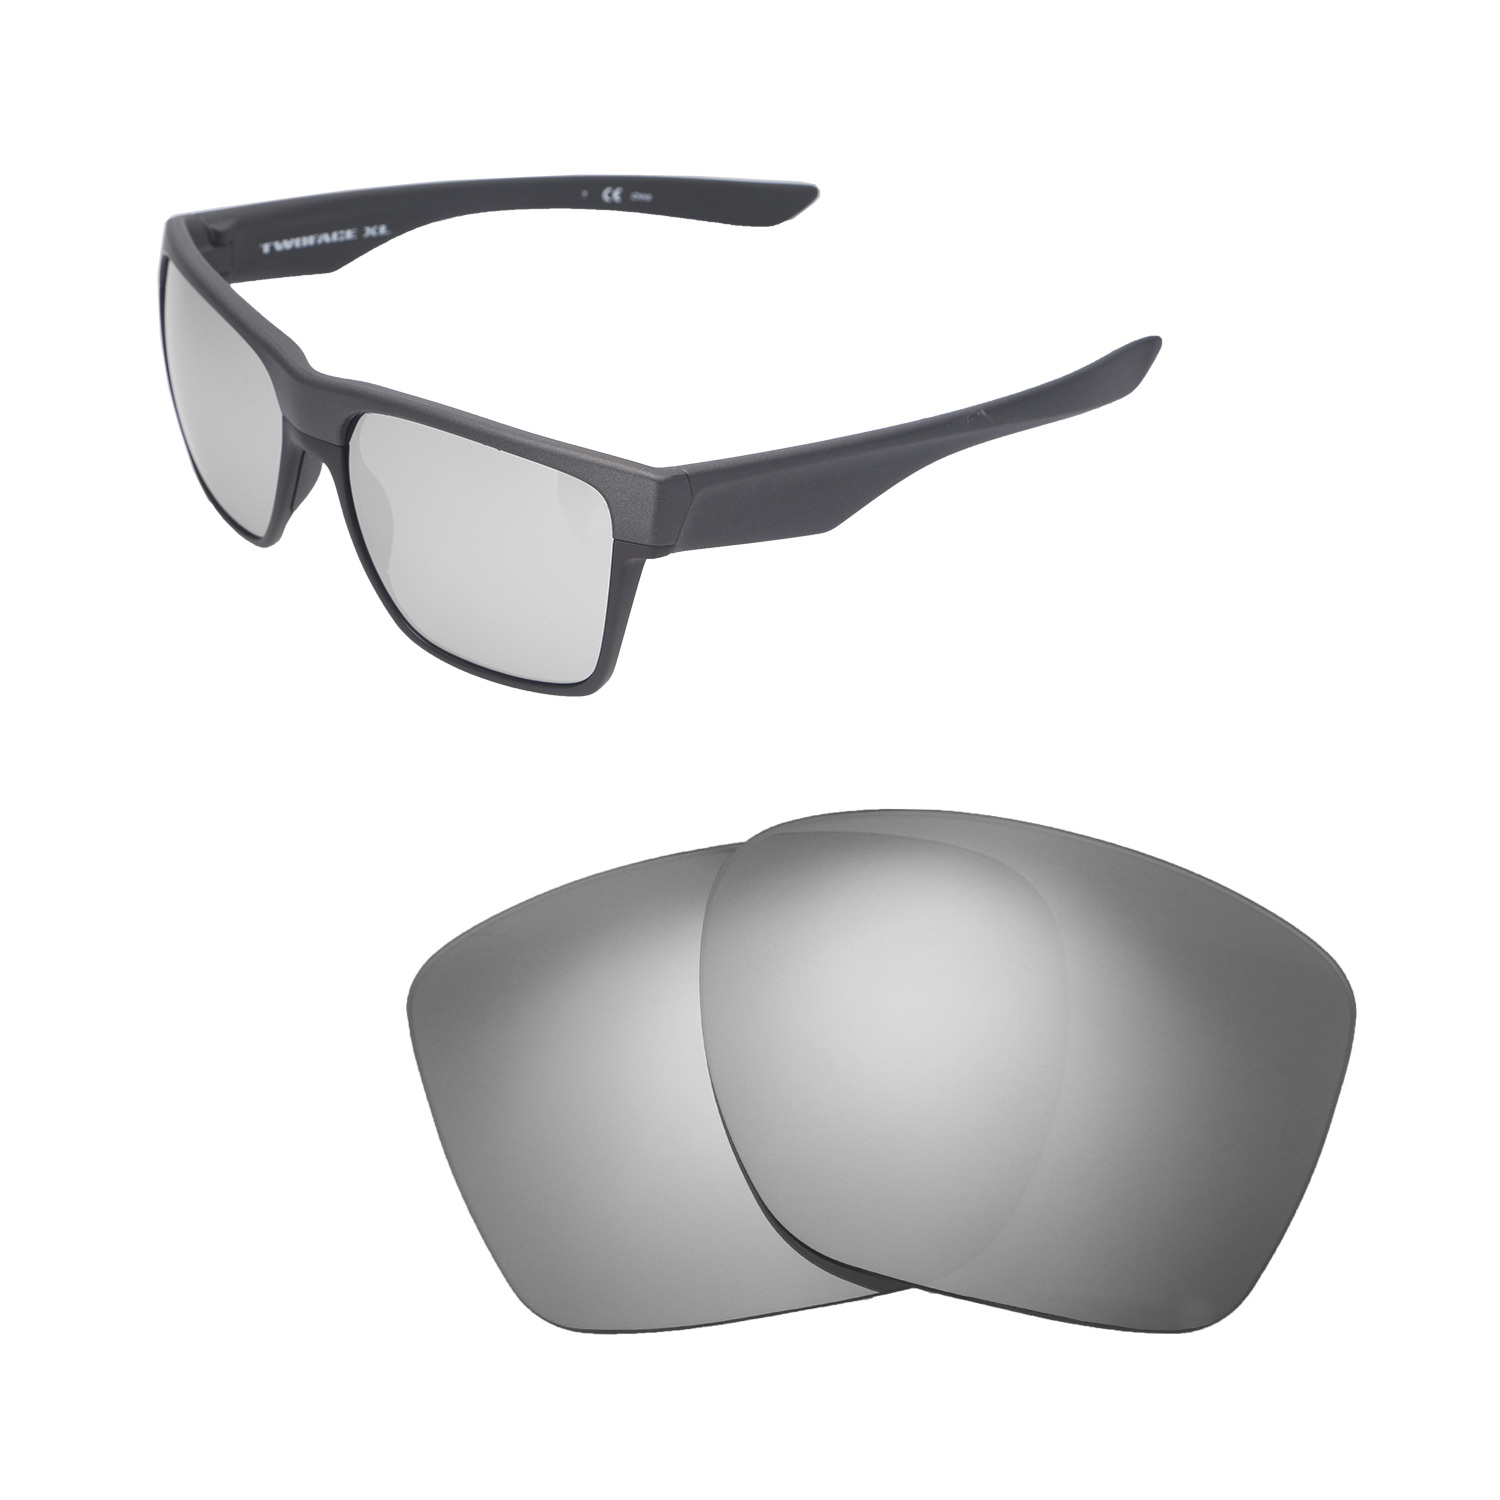 bfabd903089 Details about Walleva Titanium Polarized Replacement Lenses For Oakley  TwoFace XL Sunglasses